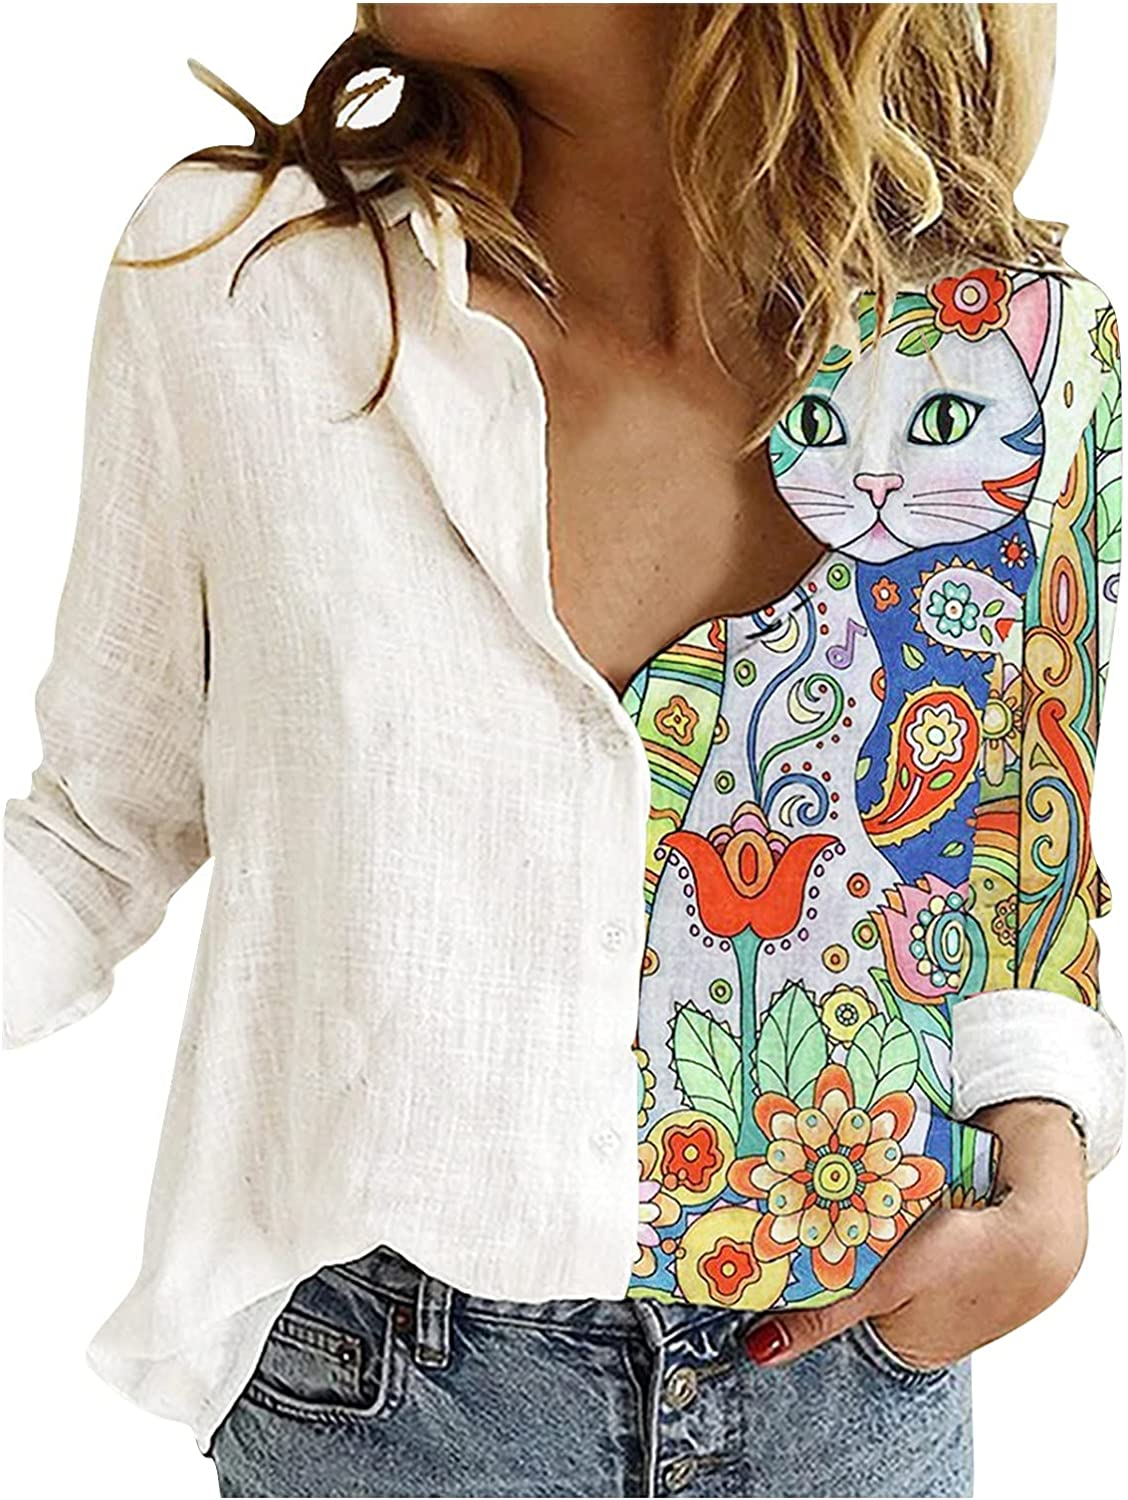 Shirts for Womens Cotton Linen Long Sleeve Blouse Casual Button Down Tunic Tops Funny Cat Pattern Fall Winter Tops